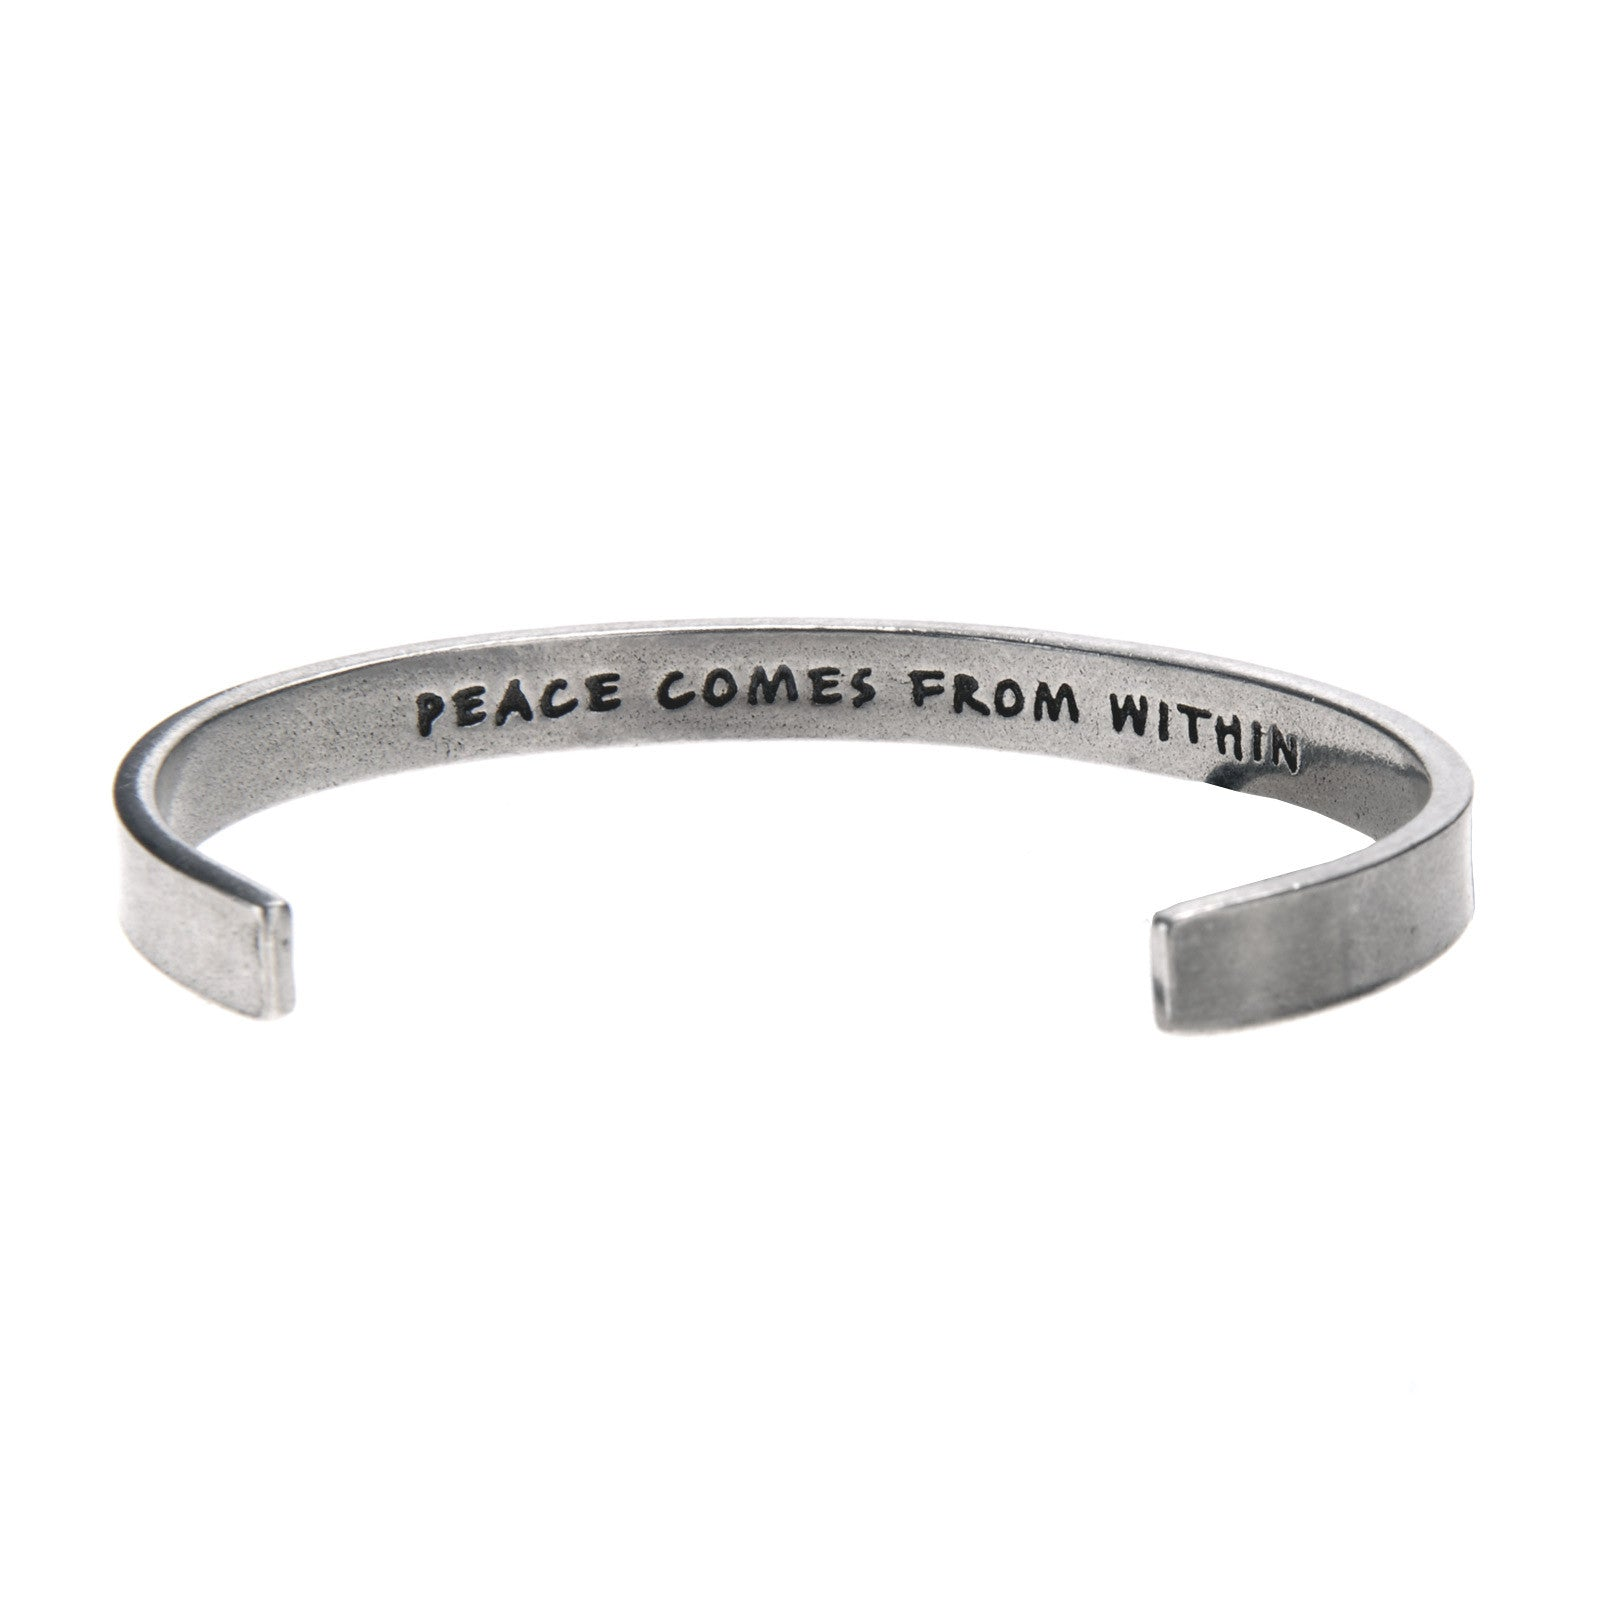 Peace Comes From Within Quotable Cuff Bracelet - Whitney Howard Designs